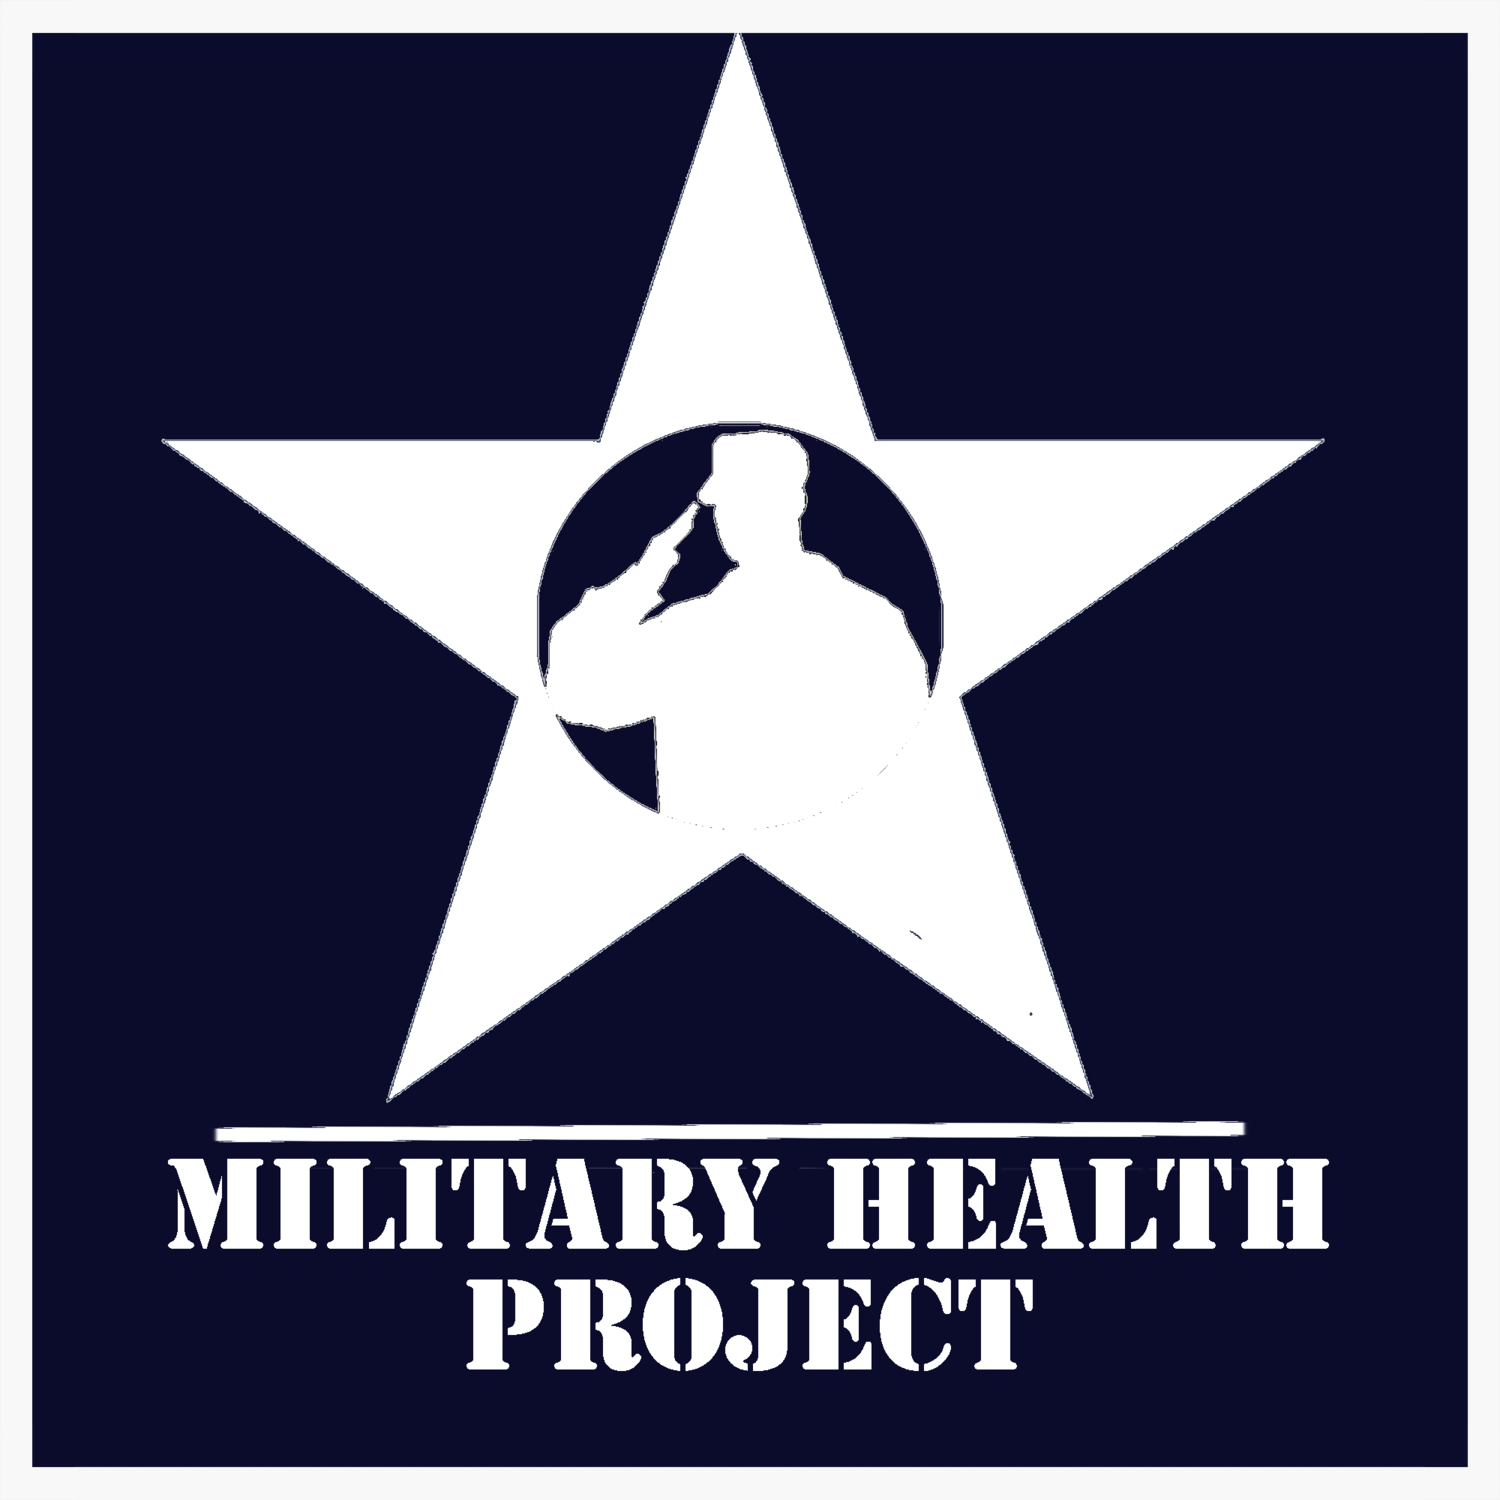 Military Health Project